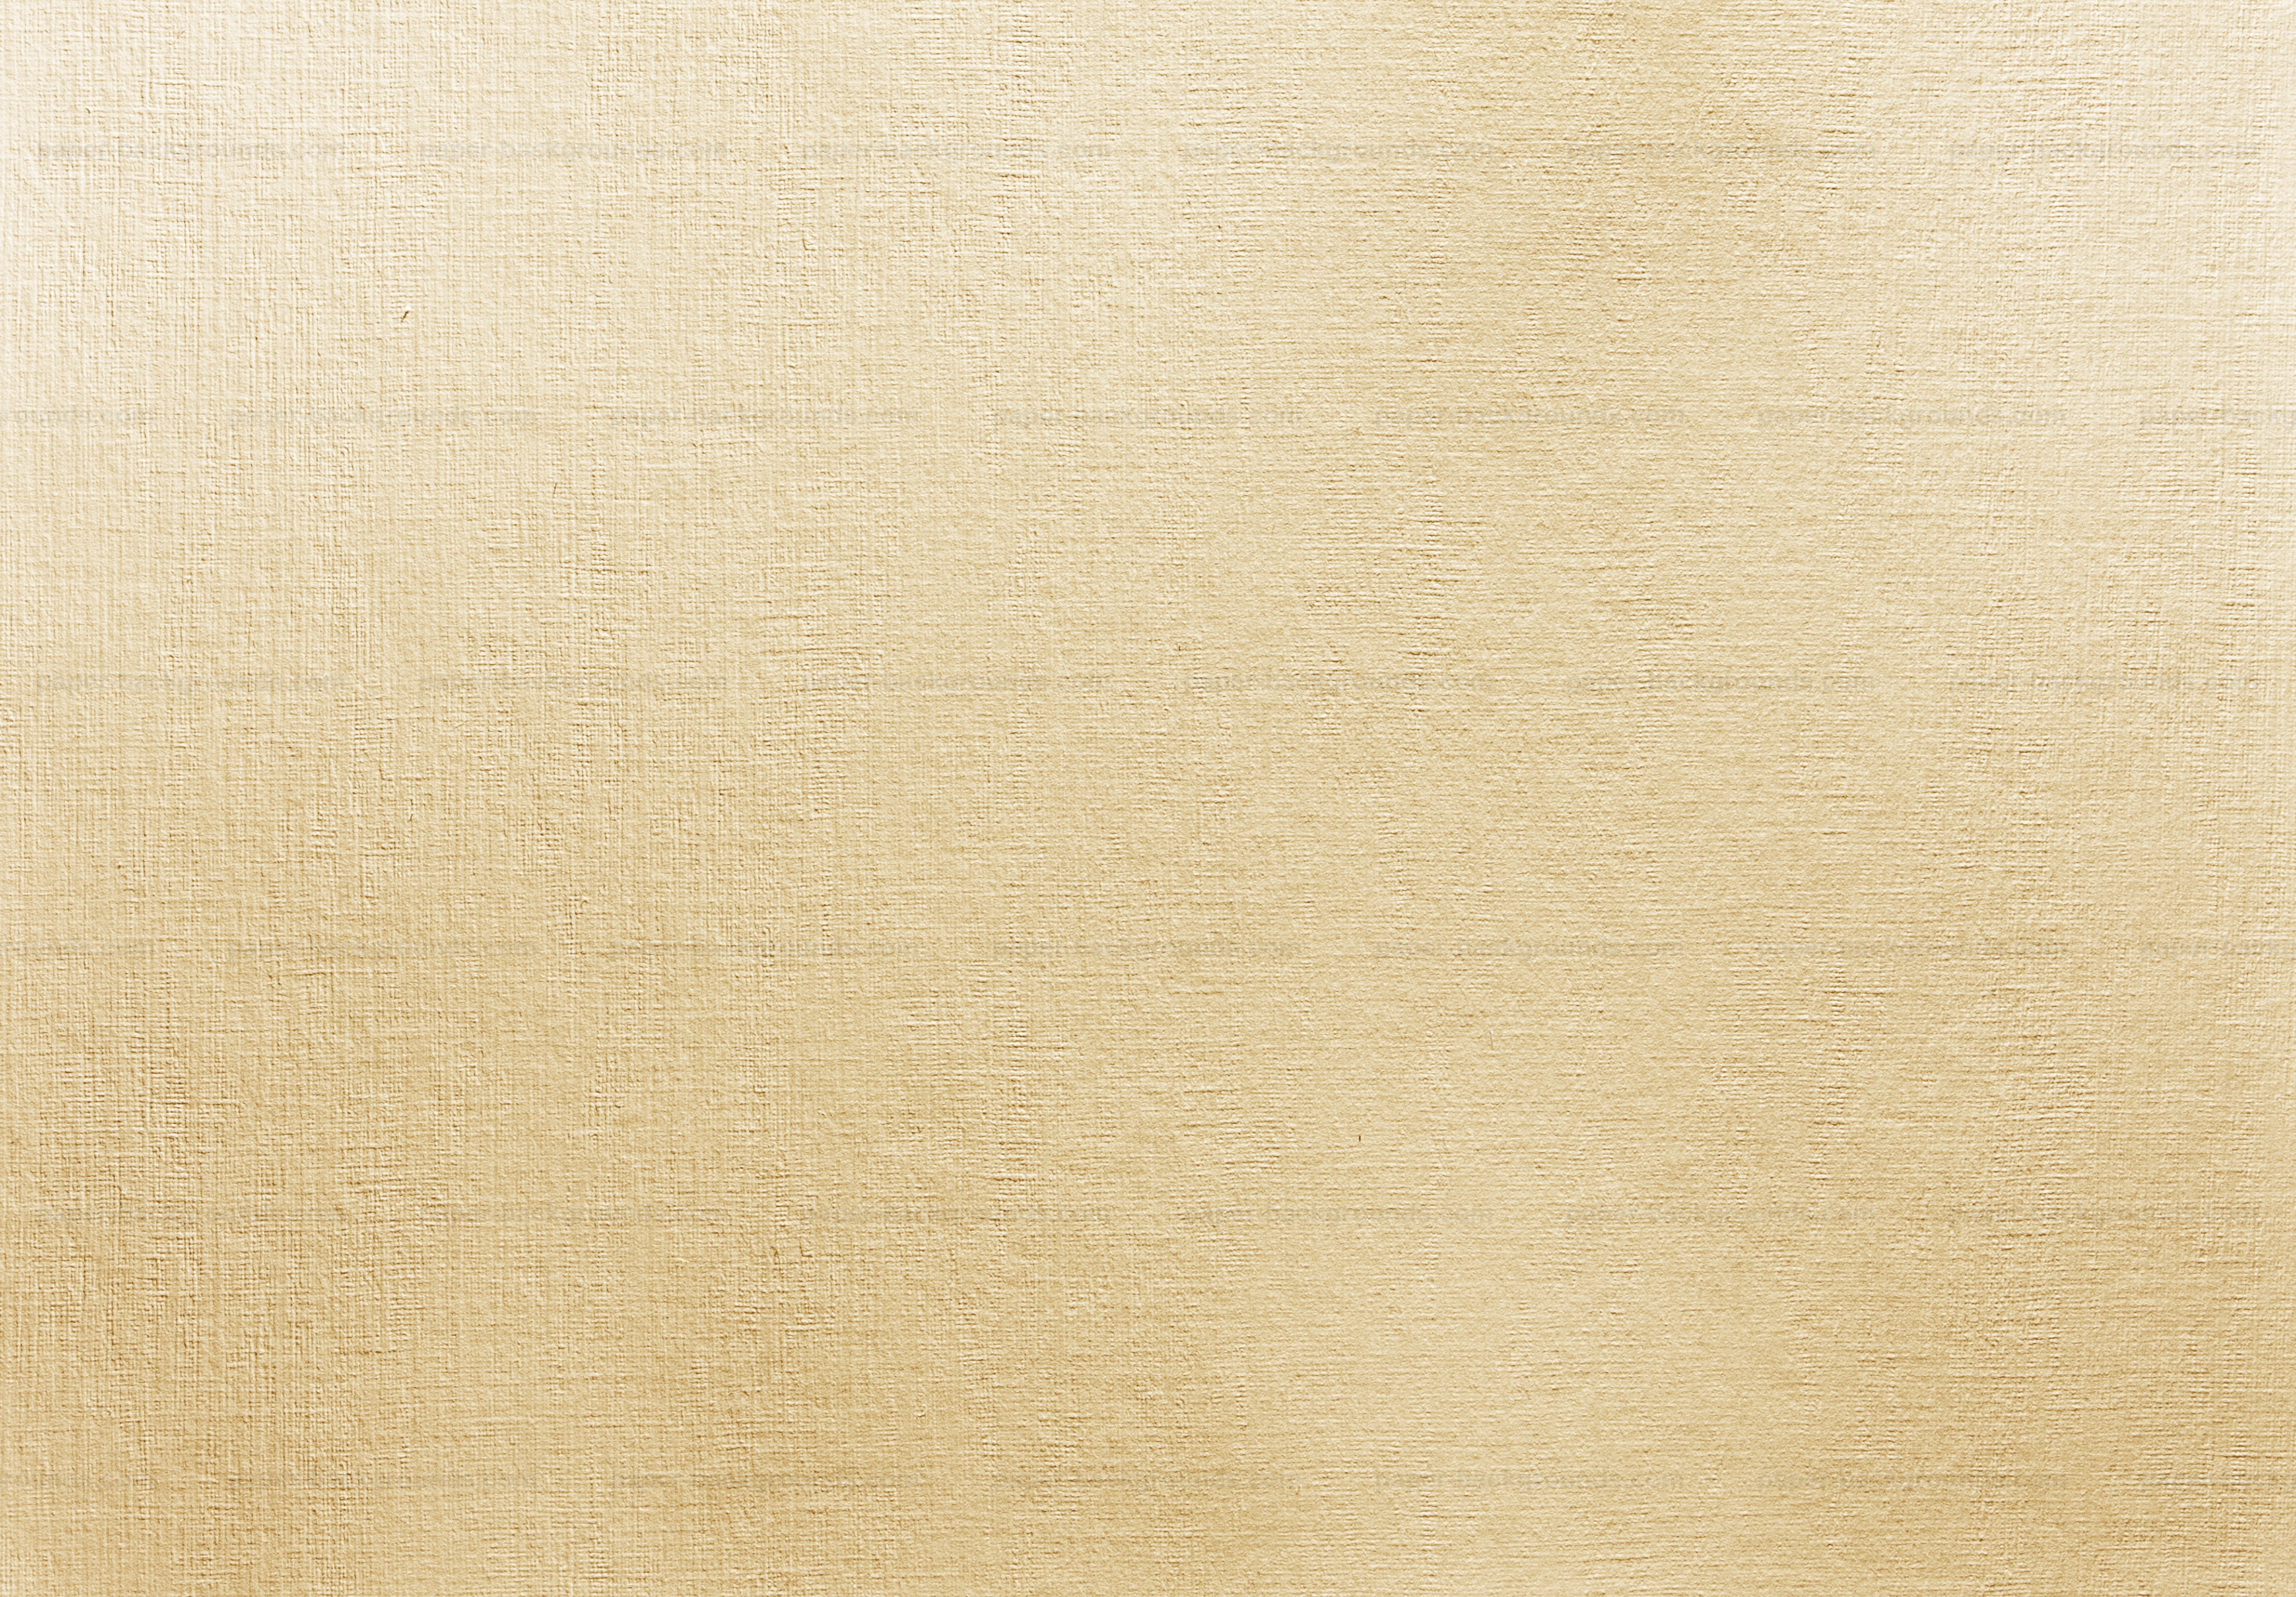 Paper Texture Long Tail Background Images